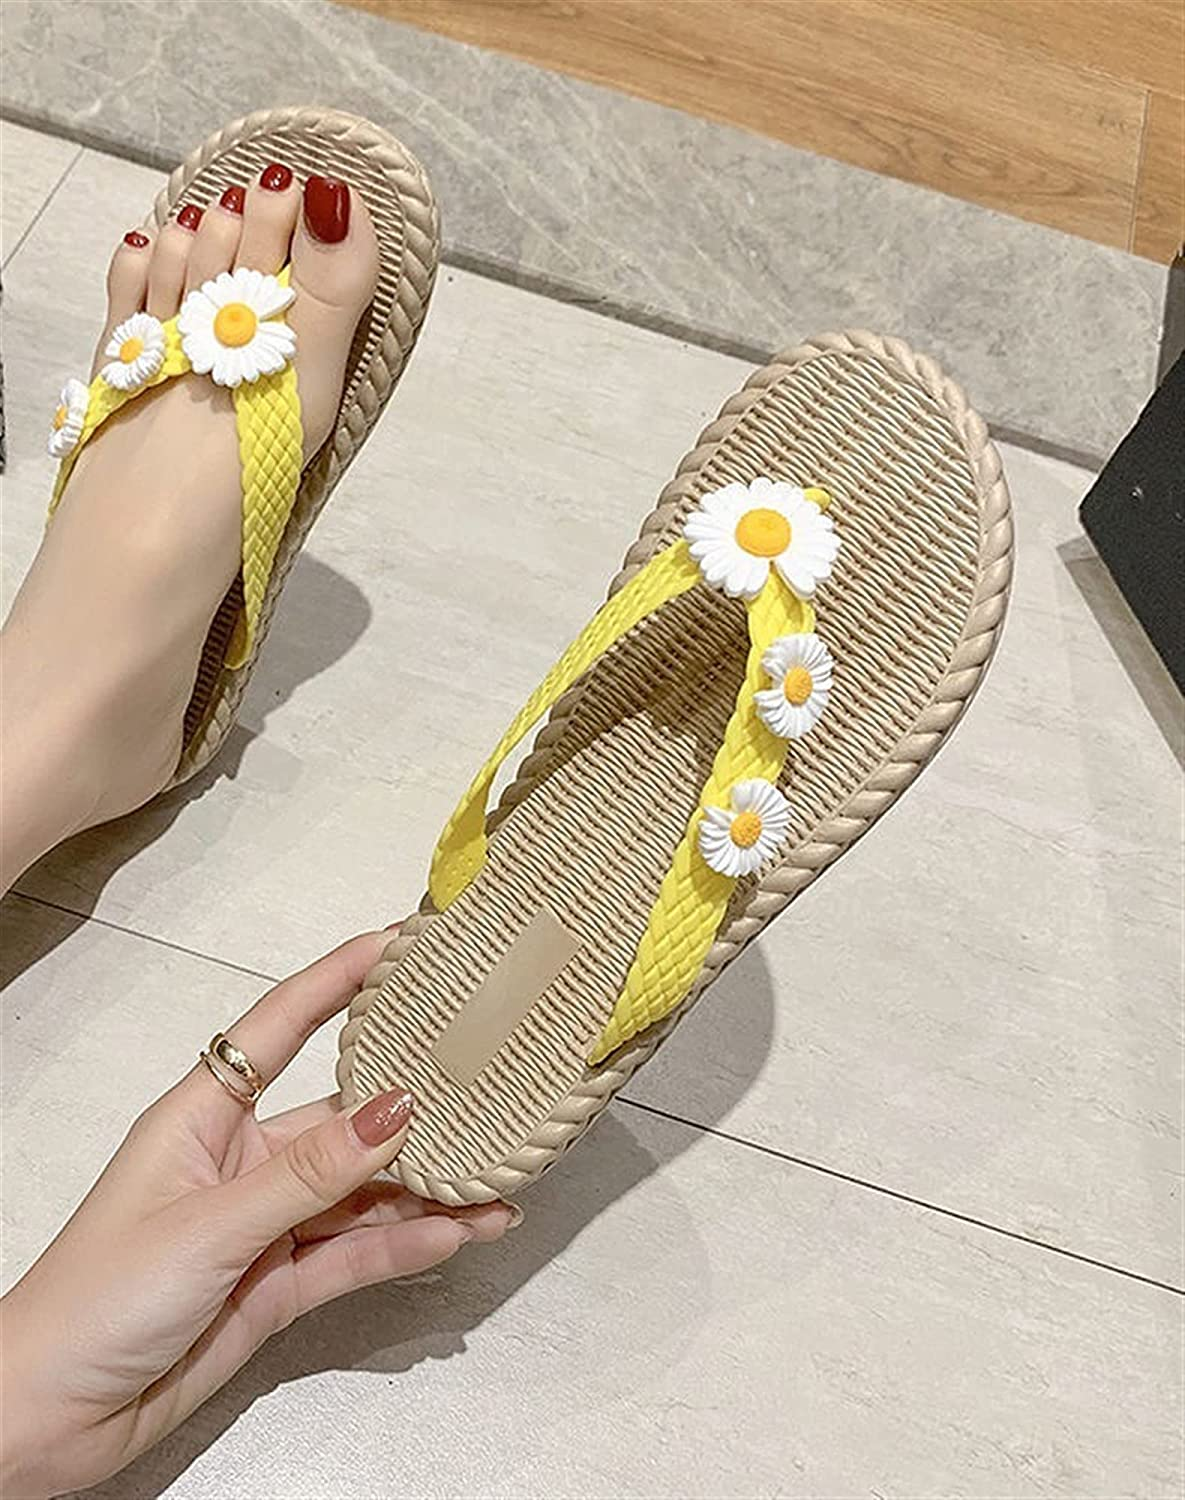 Yuncheng Women's Daisy Strap Print Flip Flops Open Toe Thong Slide Slippers Summer Casual Slippers (Color : Yellow, Shoe Size : 6.5)